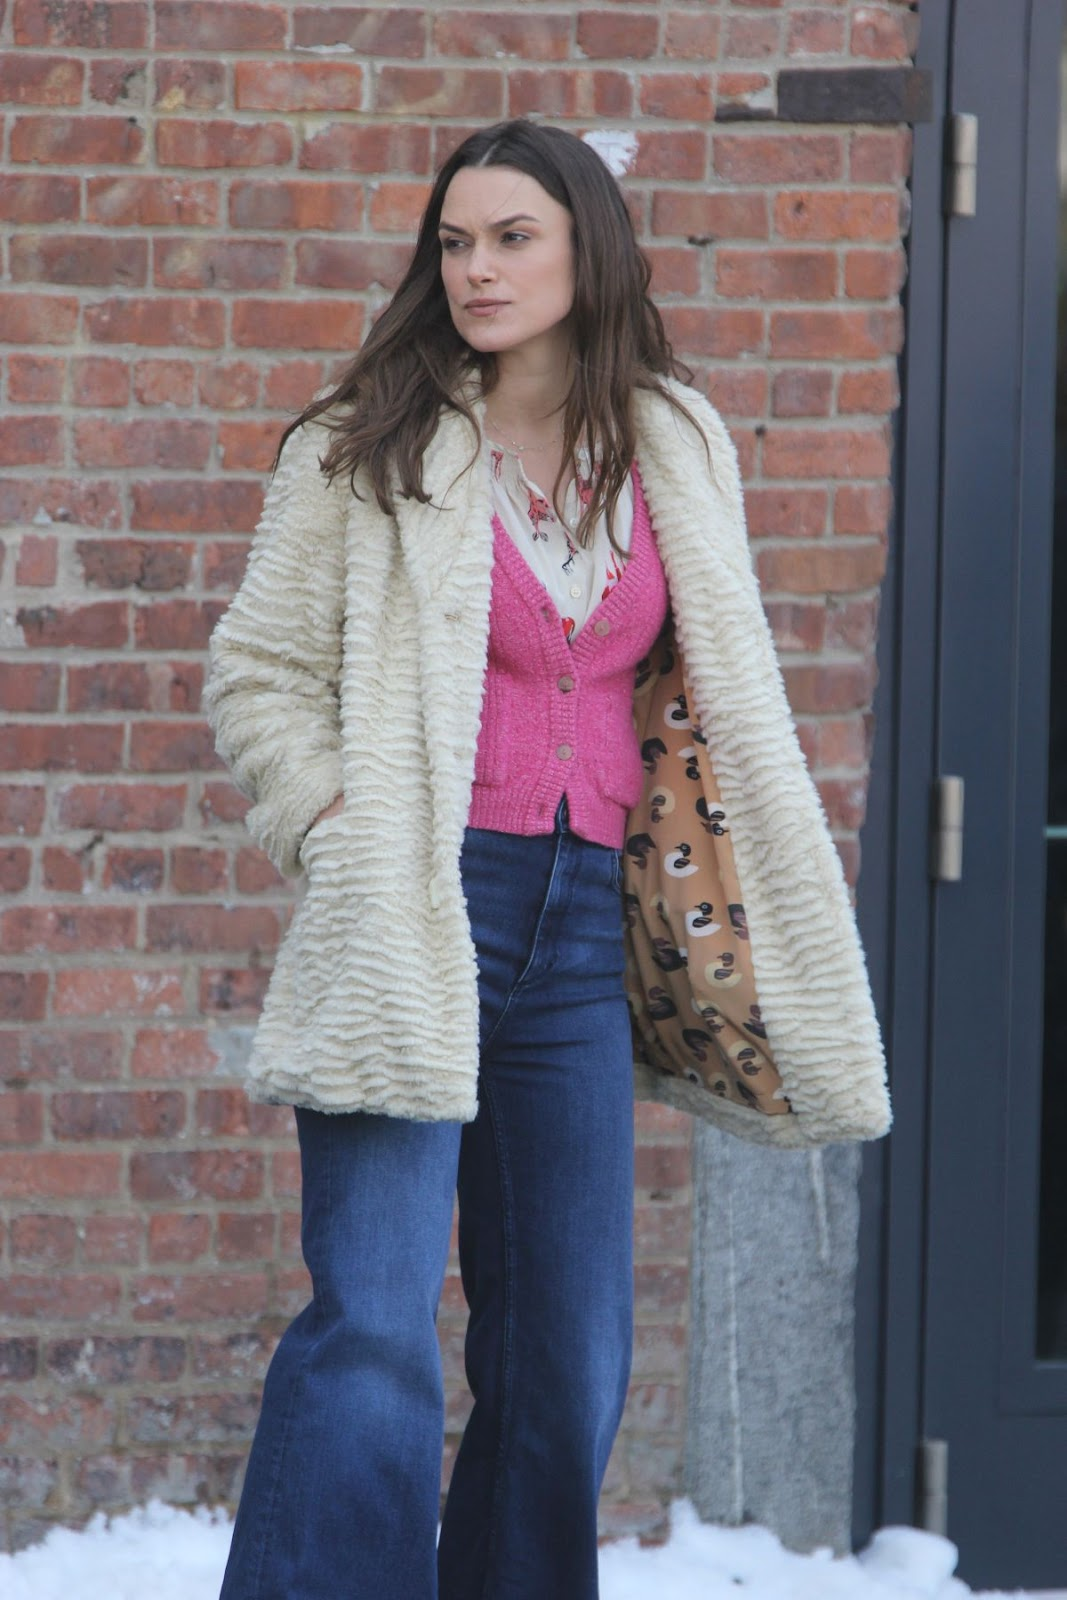 Keira Knightley - Biography, Photo, Wallpapers | Movie ...